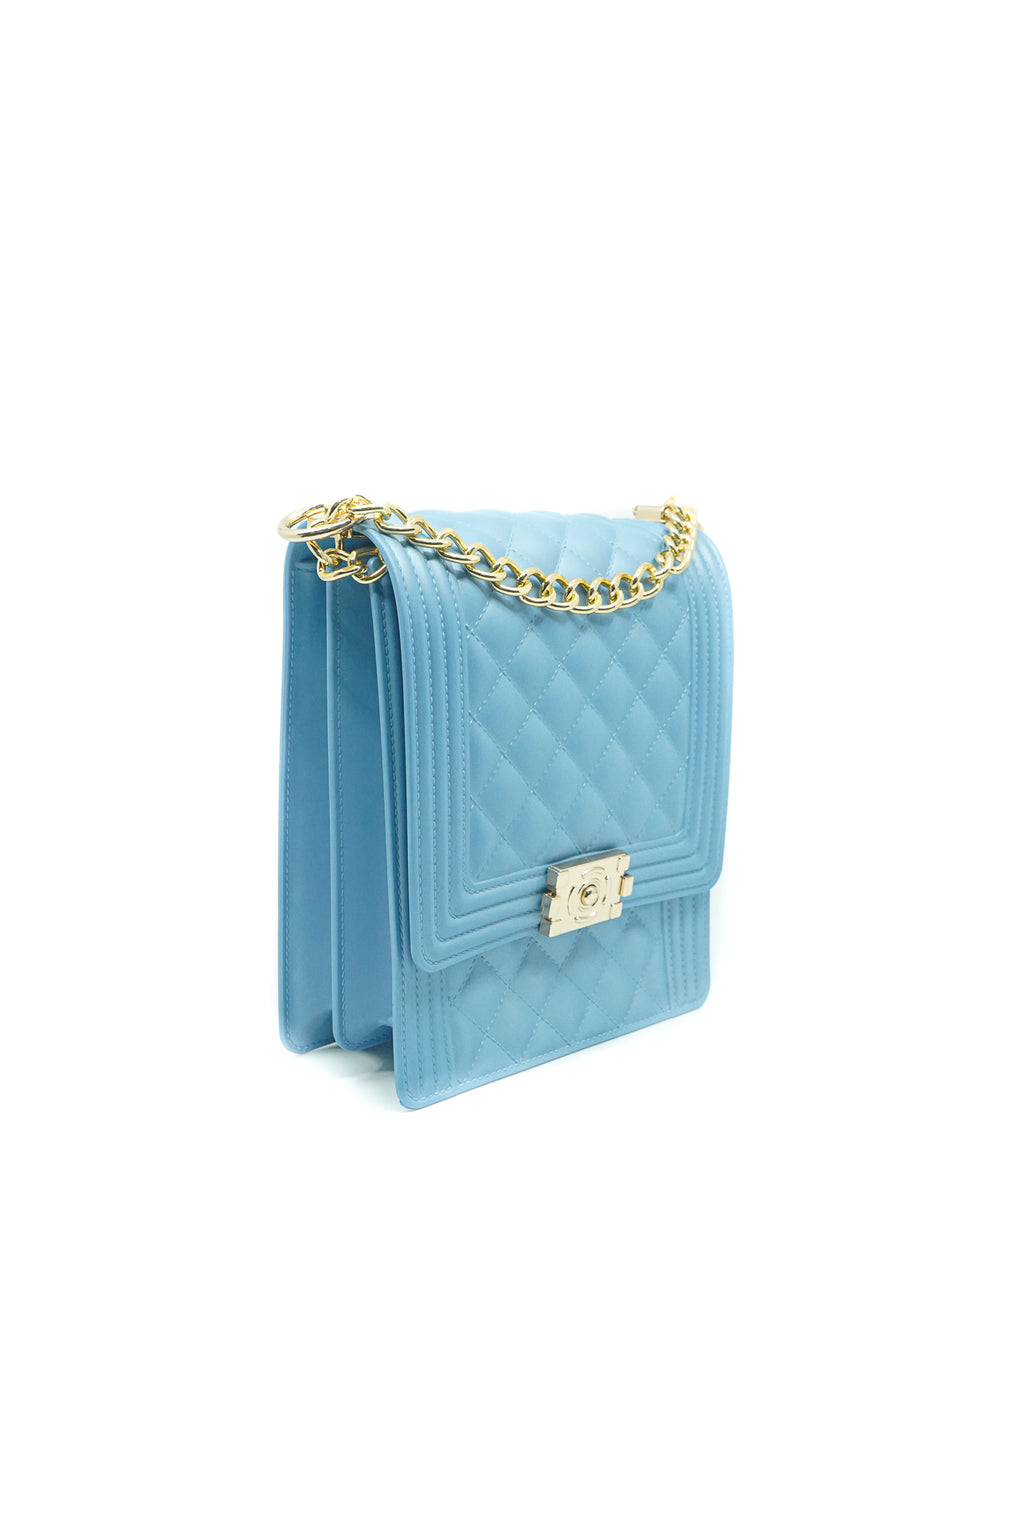 Rectangle Quilted Jelly Bag in Blue - Fashion House USA